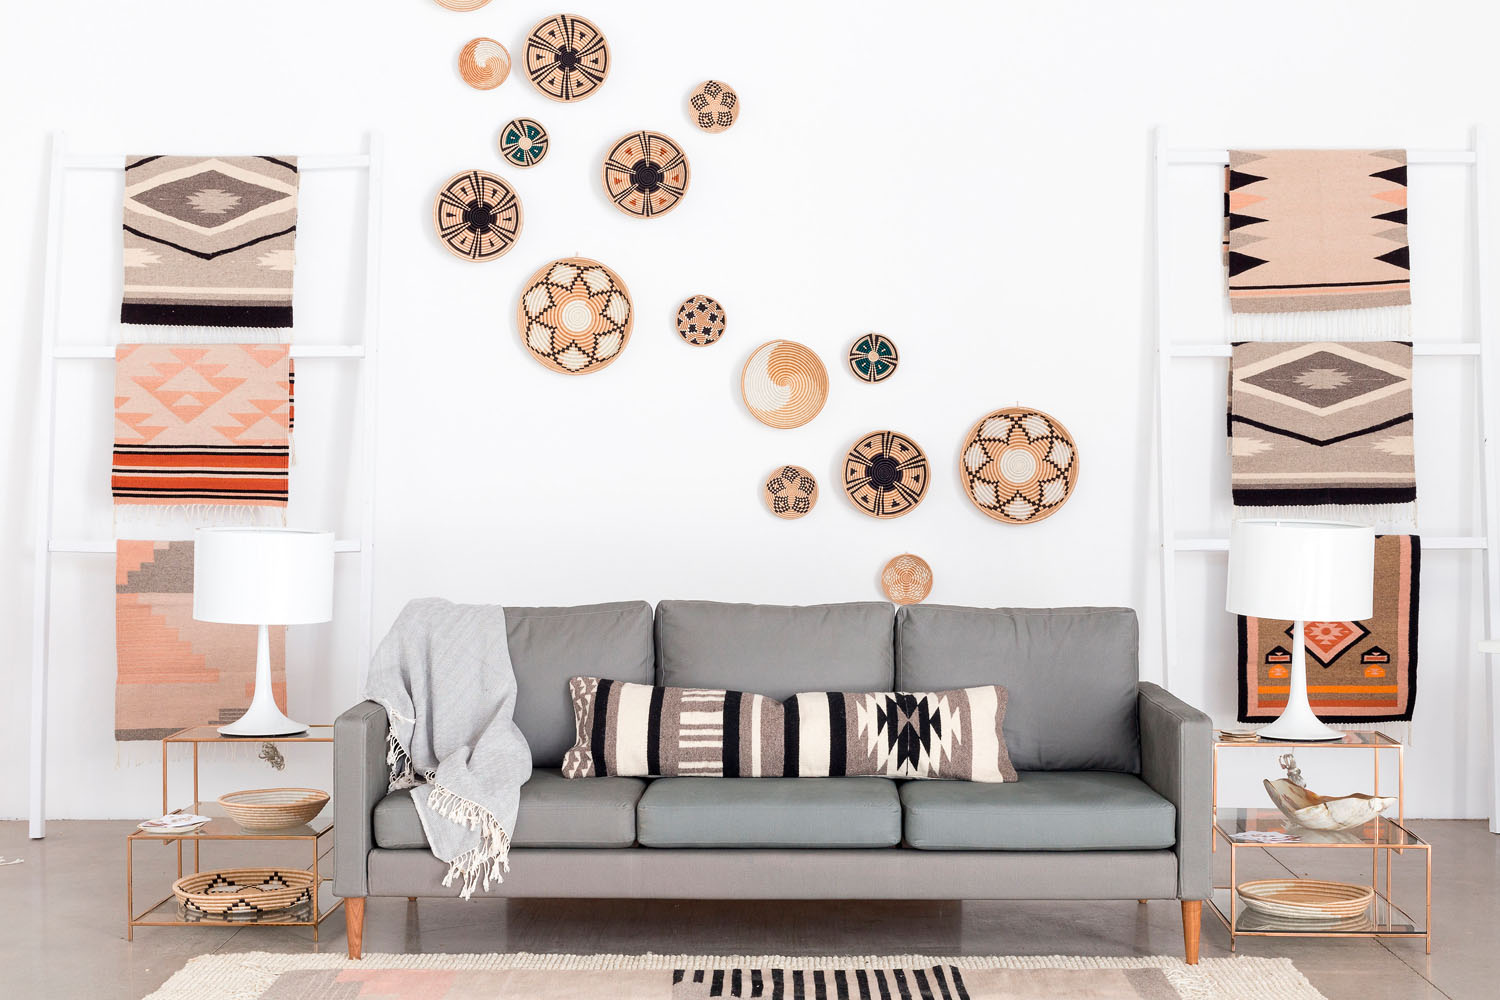 Local + Lejos Is An Online Home Décor Company That Develops Lasting  Relationships With Artisan Partners Around The Globe. With An Eye Towards  Design, ...